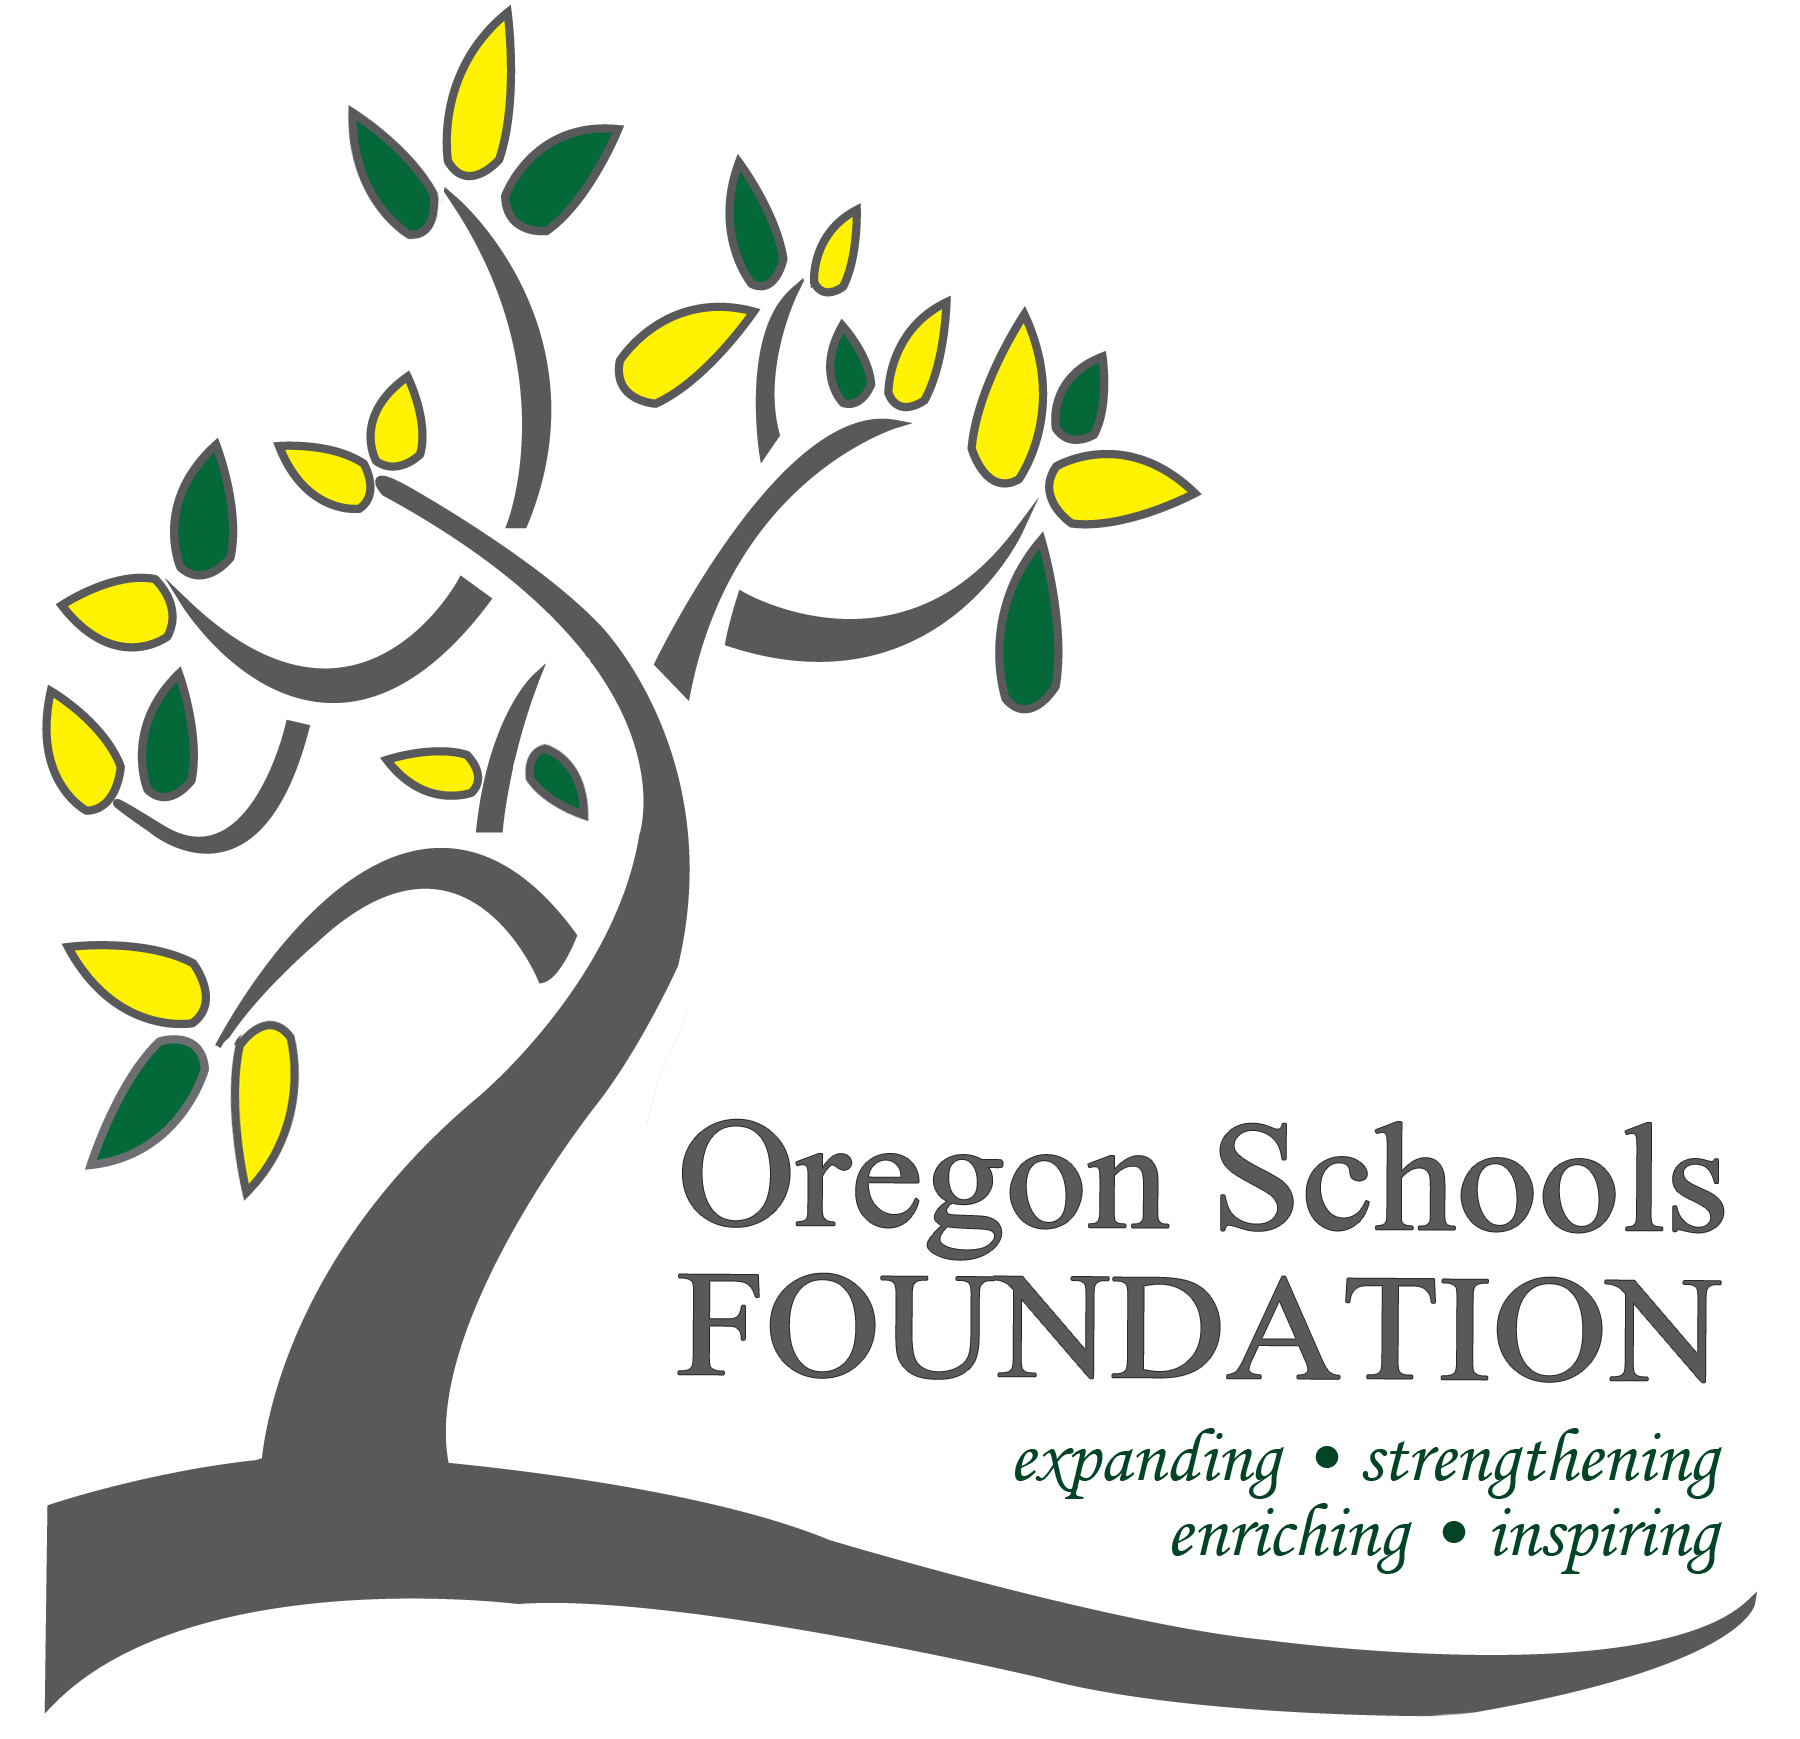 Oregon Schools Foundation